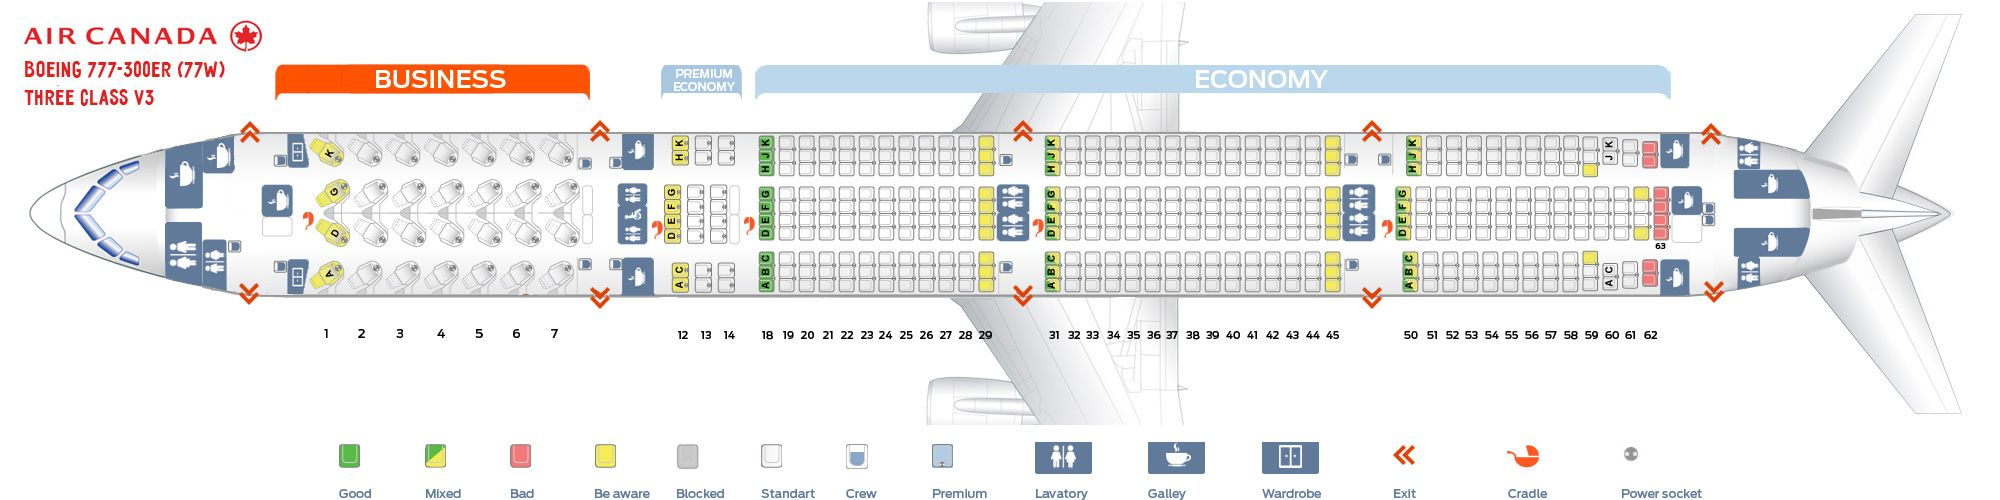 Air Canada Fleet Boeing 777 300er Details And Pictures With